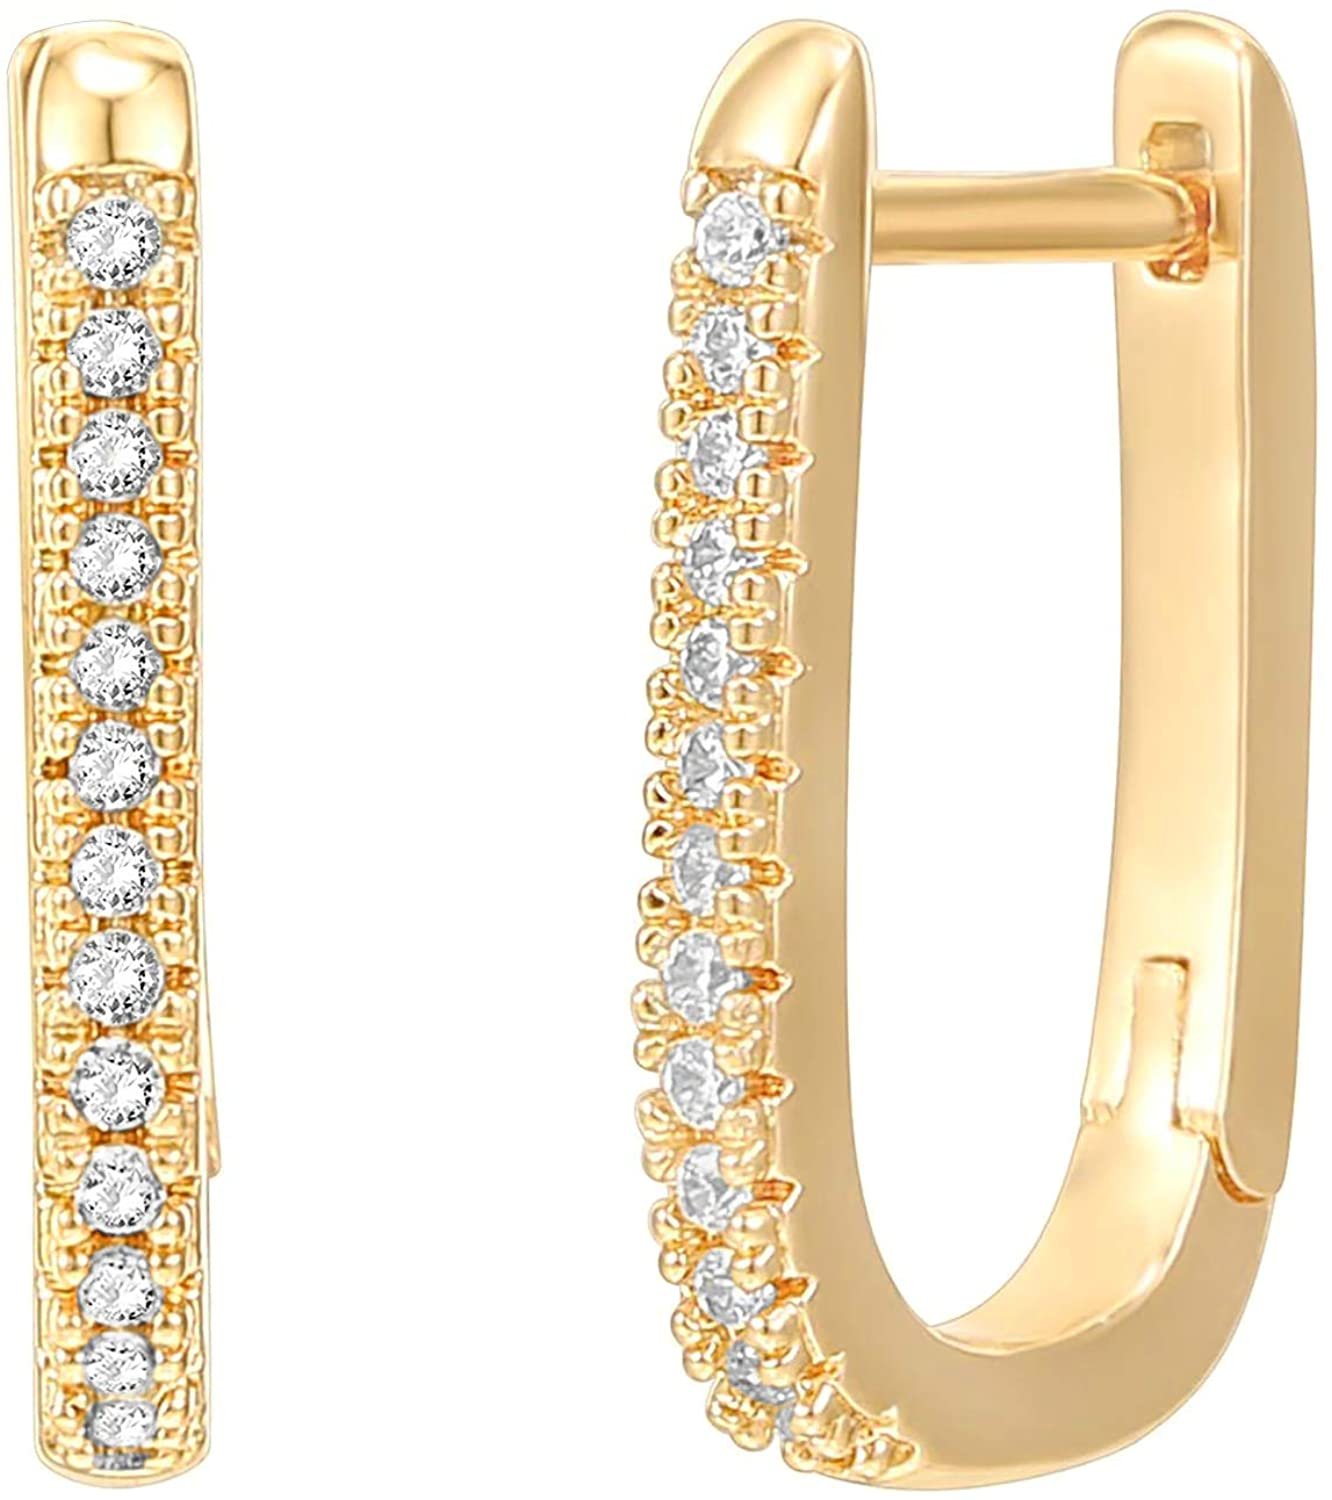 PAVOI 14K Gold Plated 925 Sterling Silver Cubic Zirconia U-Shaped Huggie Earrings in Rose Gold, White Gold and Yellow Gold